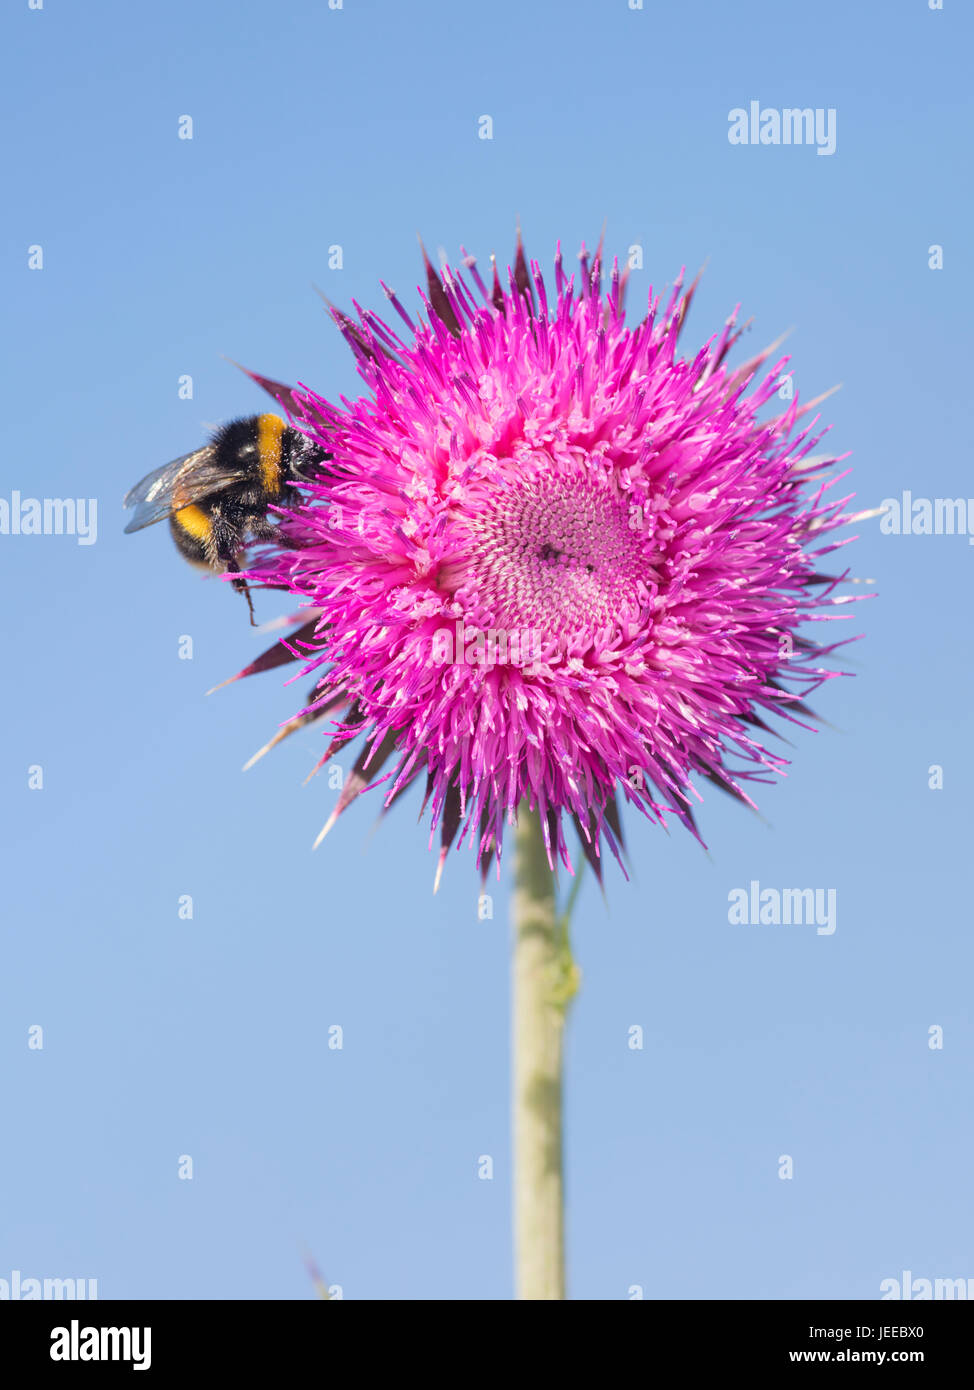 Bumble-bee feeding on Milk thistle flower in high summer in Britain - Stock Image